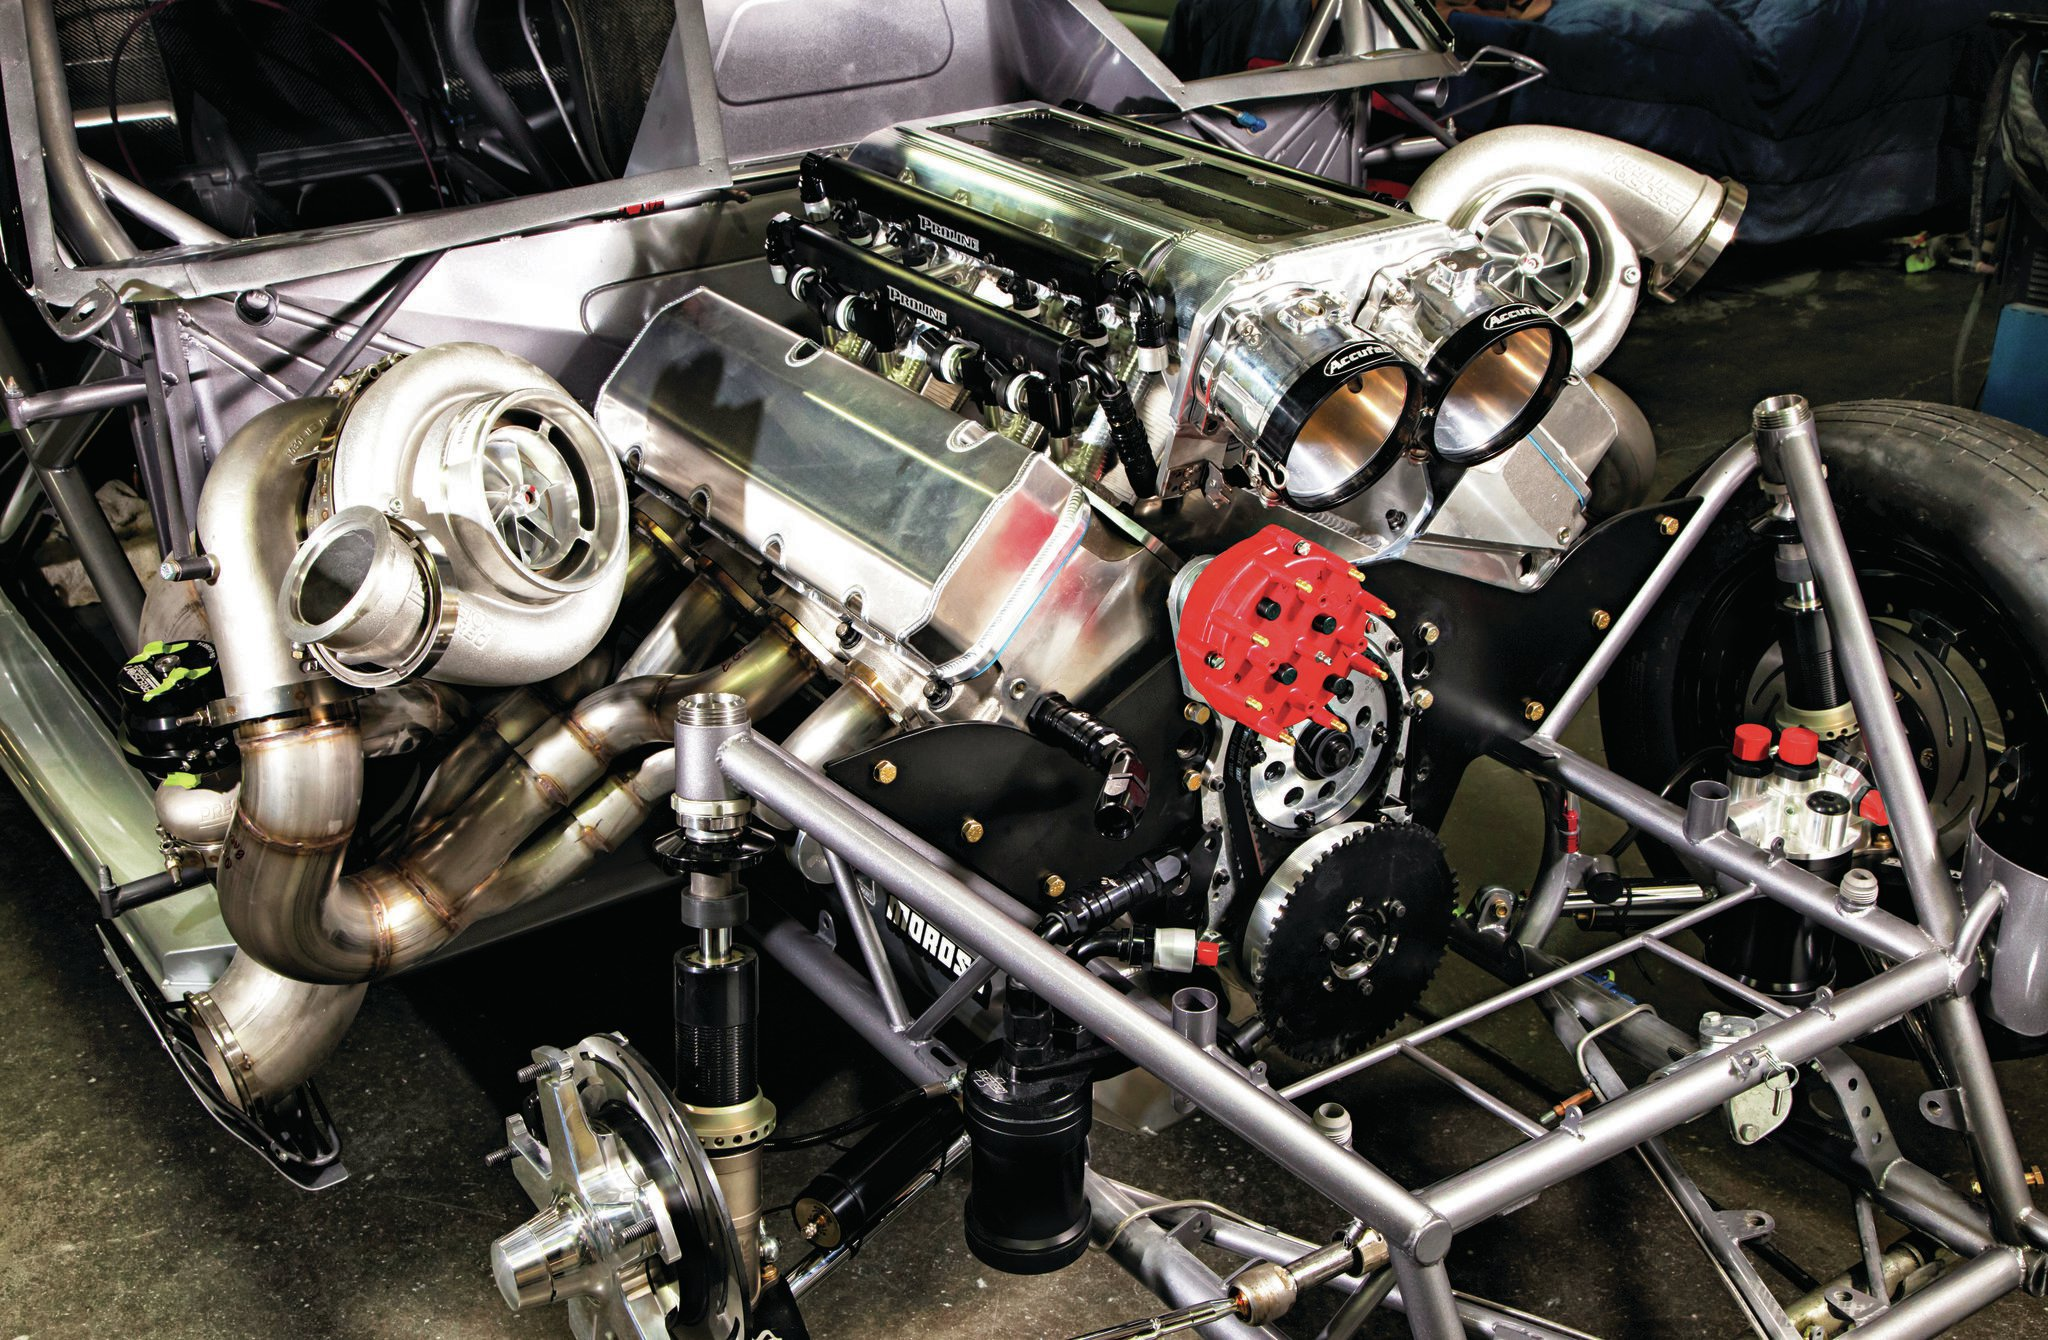 The power in Larson's S-10 comes from a Pro Line Racing–built 620ci, 5-inch-bore-spacing, Brodix big-block-Chevy-based, aluminum engine with Brodix heads and twin turbos. Power estimates put it above 2,500 hp on alcohol.